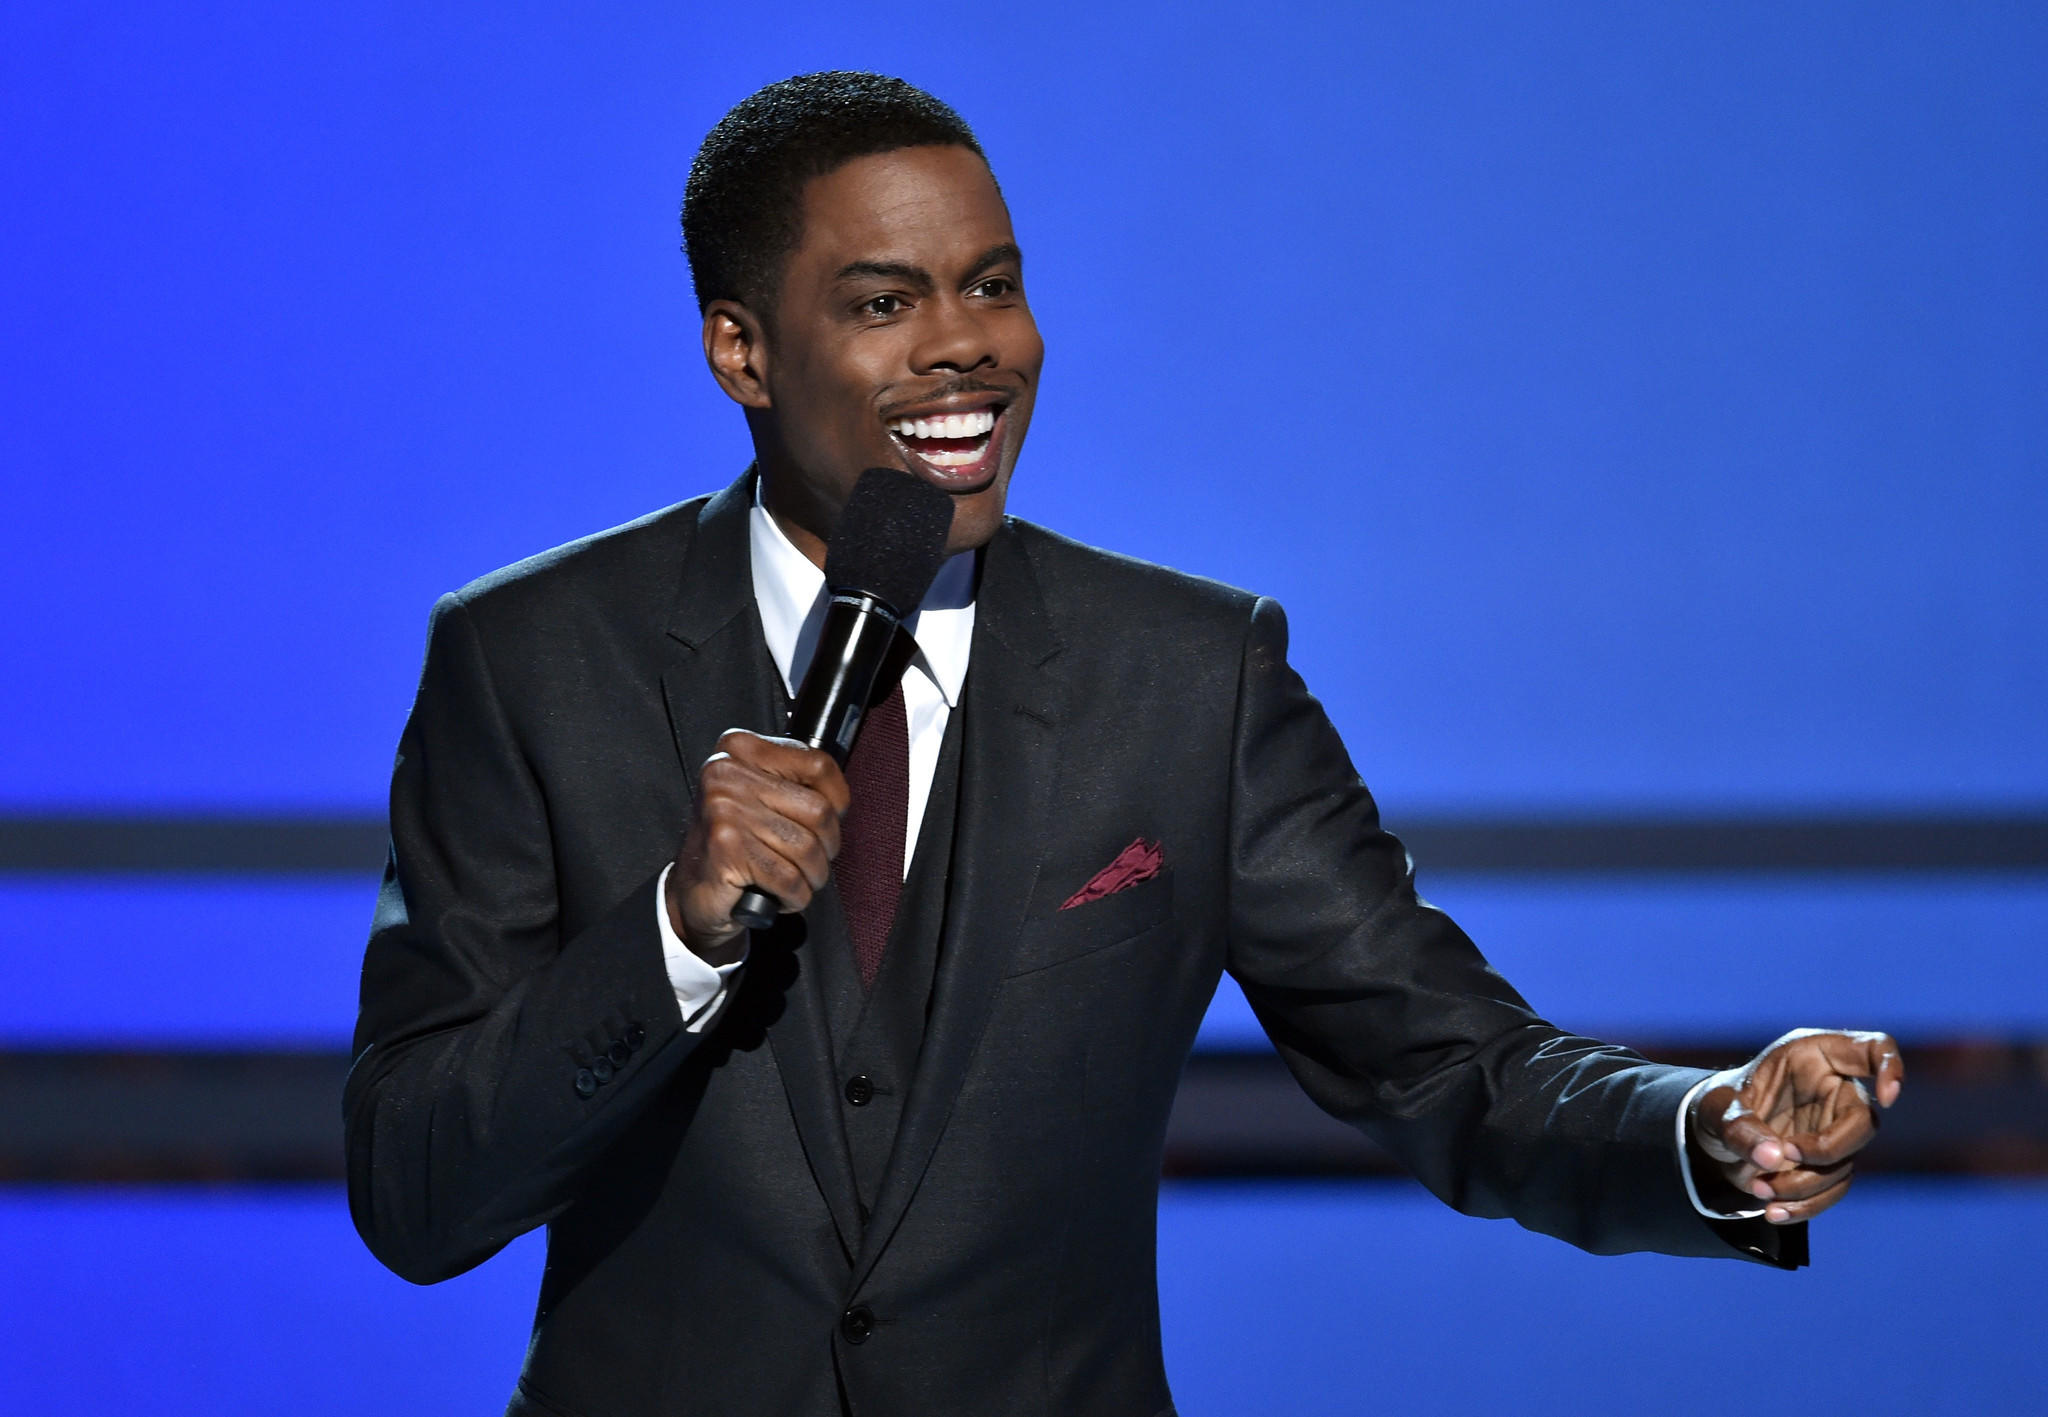 Host Chris Rock speaks onstage during the BET Awards '14 at Nokia Theatre in Los Angeles